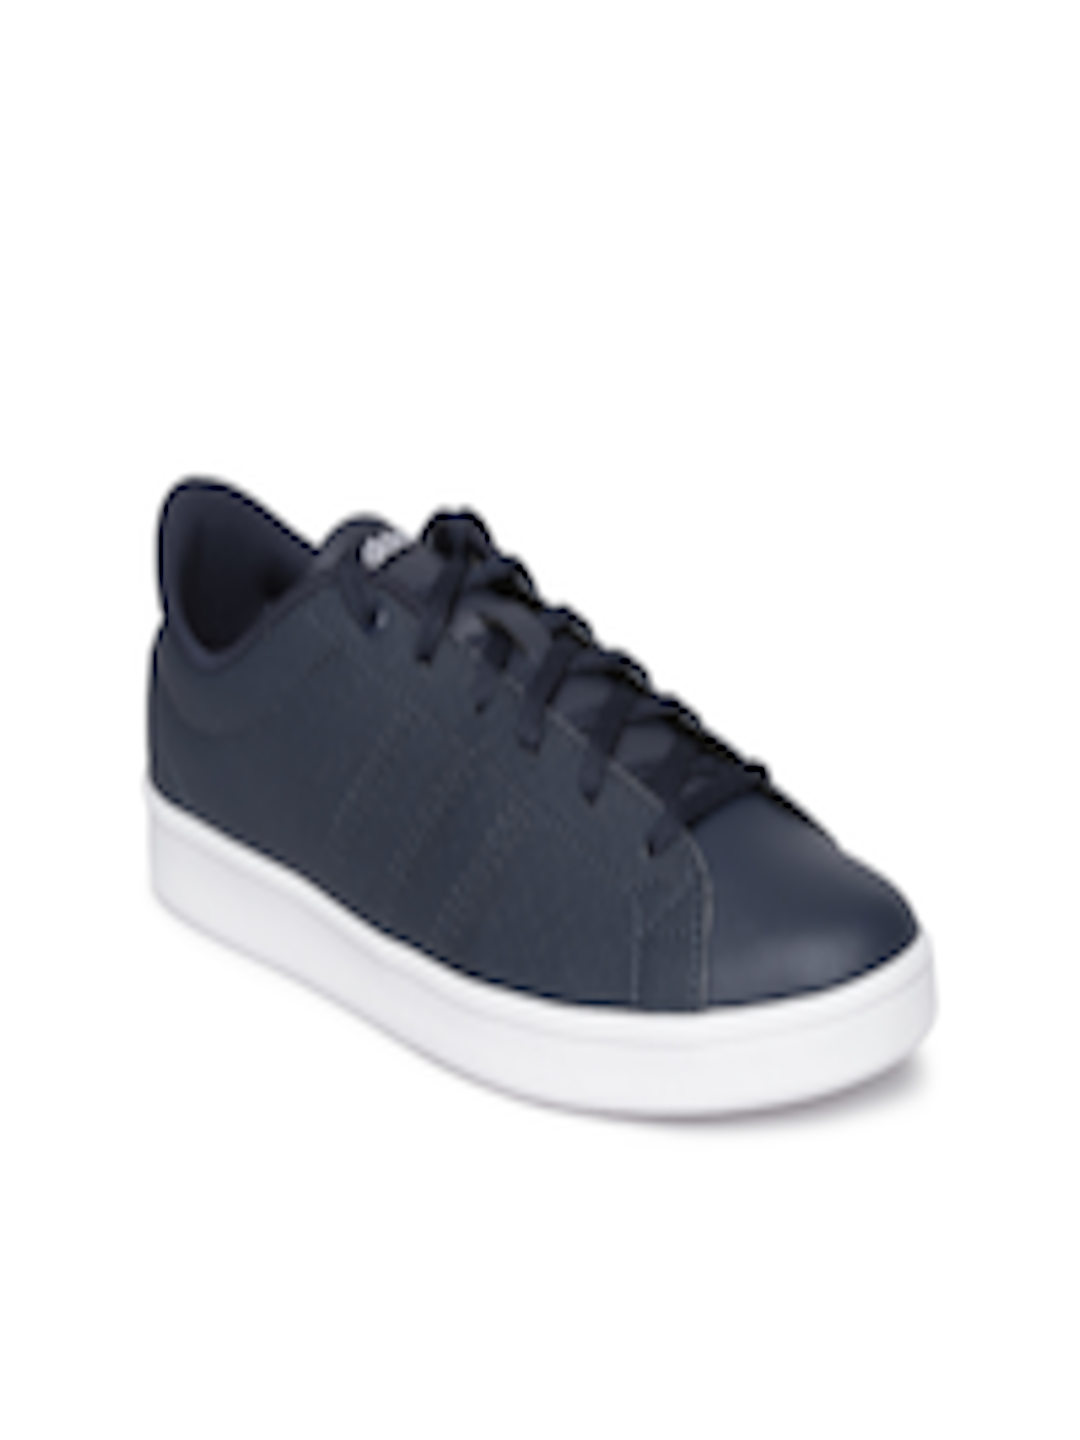 quality design 14b31 03281 Buy ADIDAS NEO Women Navy ADVANTAGE Clean QT Sneakers - Casual Shoes for  Women 1989214  Myntra